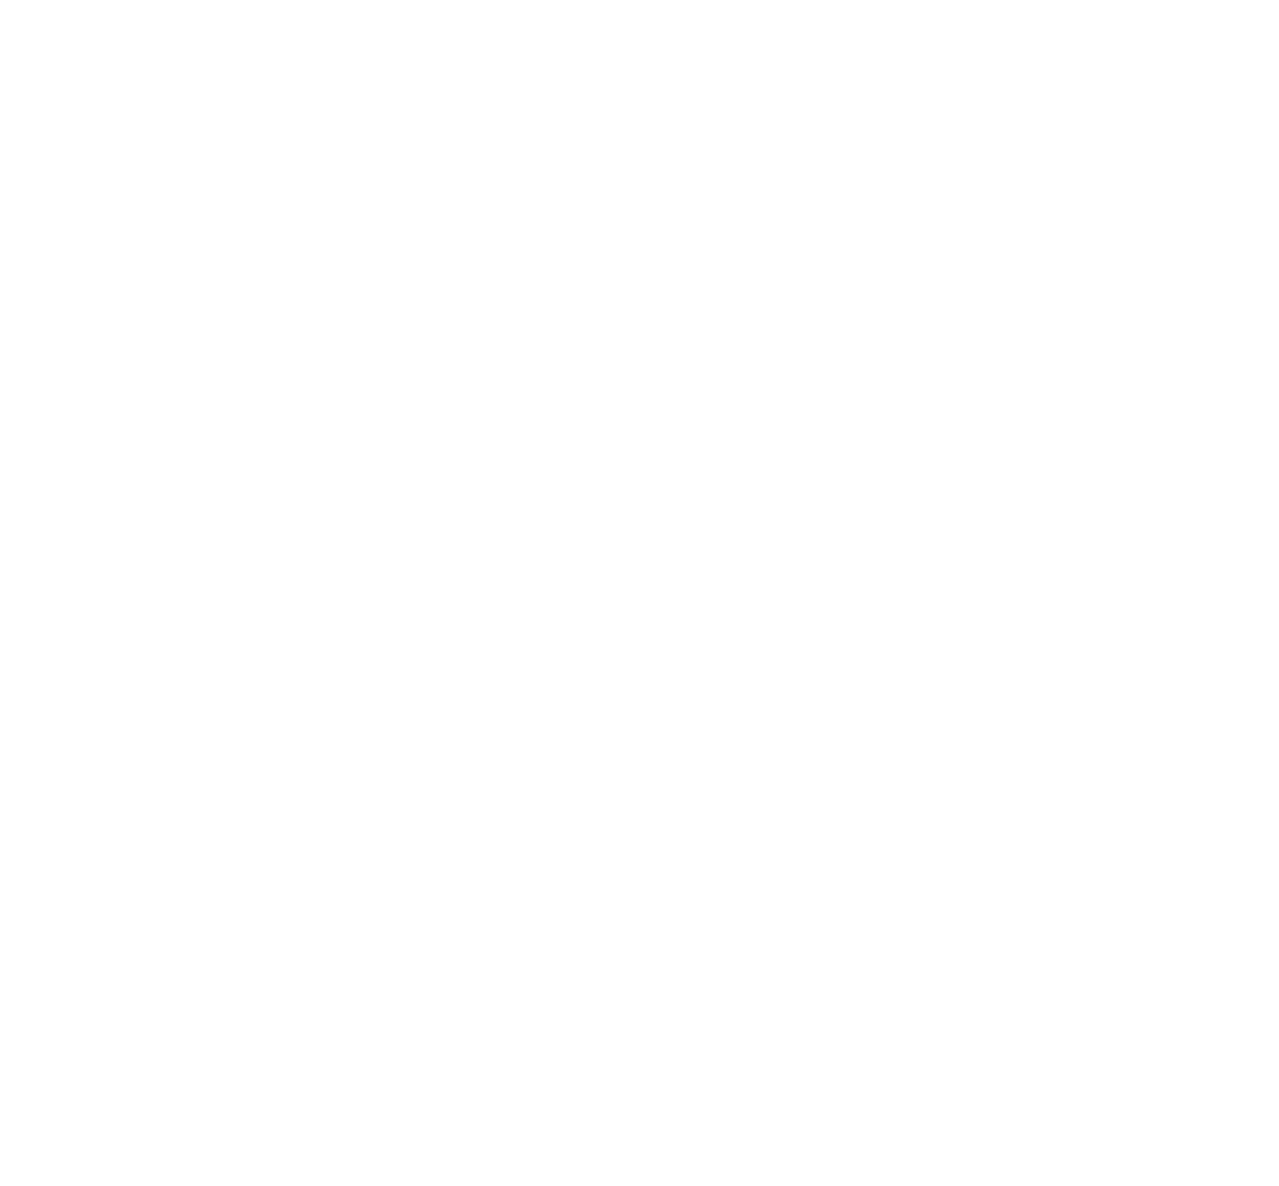 AAA Annual Conference & Trade Show